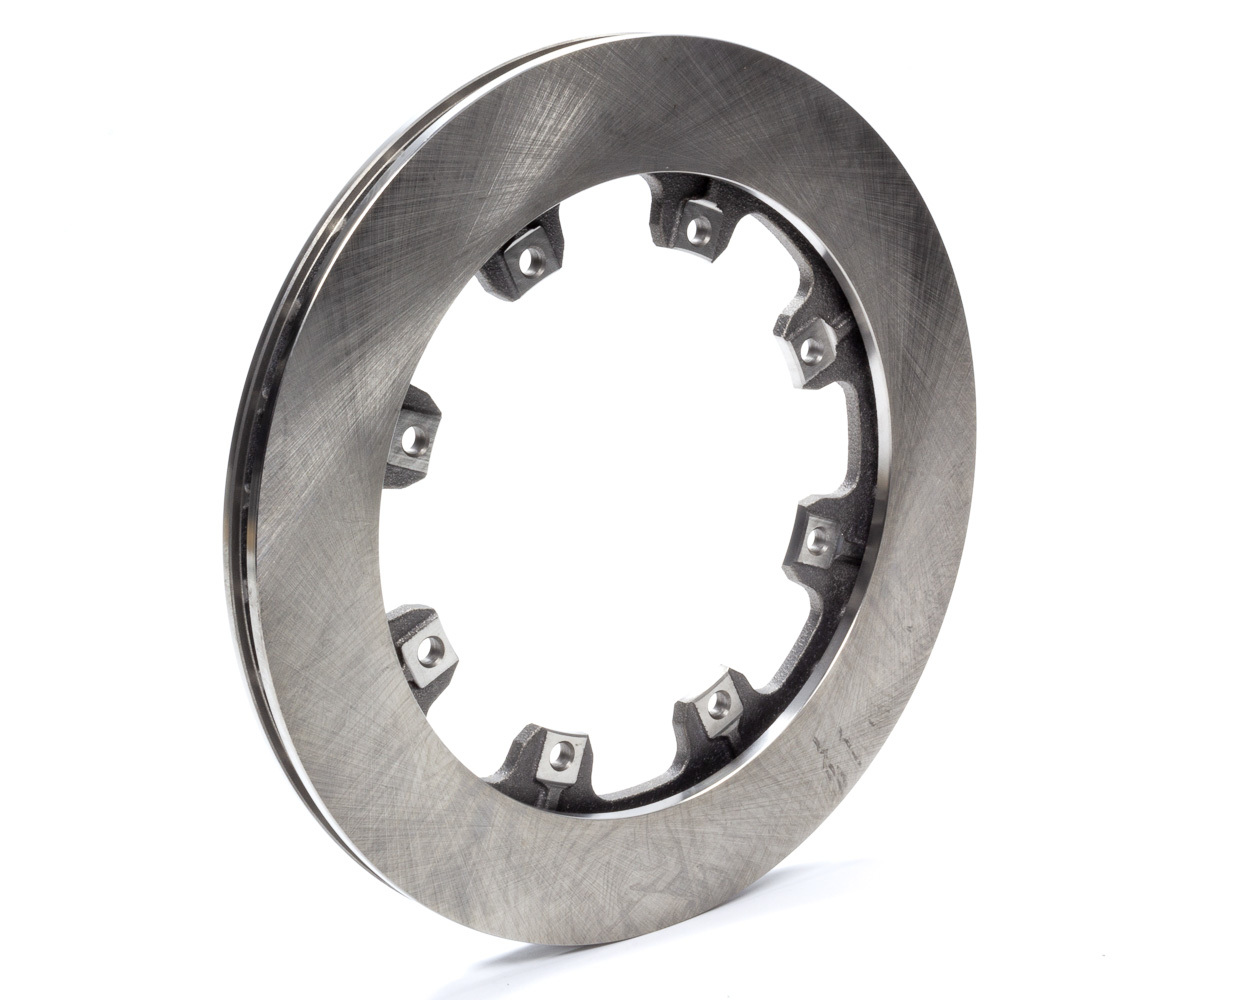 AFCO Racing Products 9850-6021 Brake Rotor, Straight Vane, 11.750 in OD, 0.810 in Thick, 8 x 7.000 in Bolt Pattern, Steel, Natural, Each